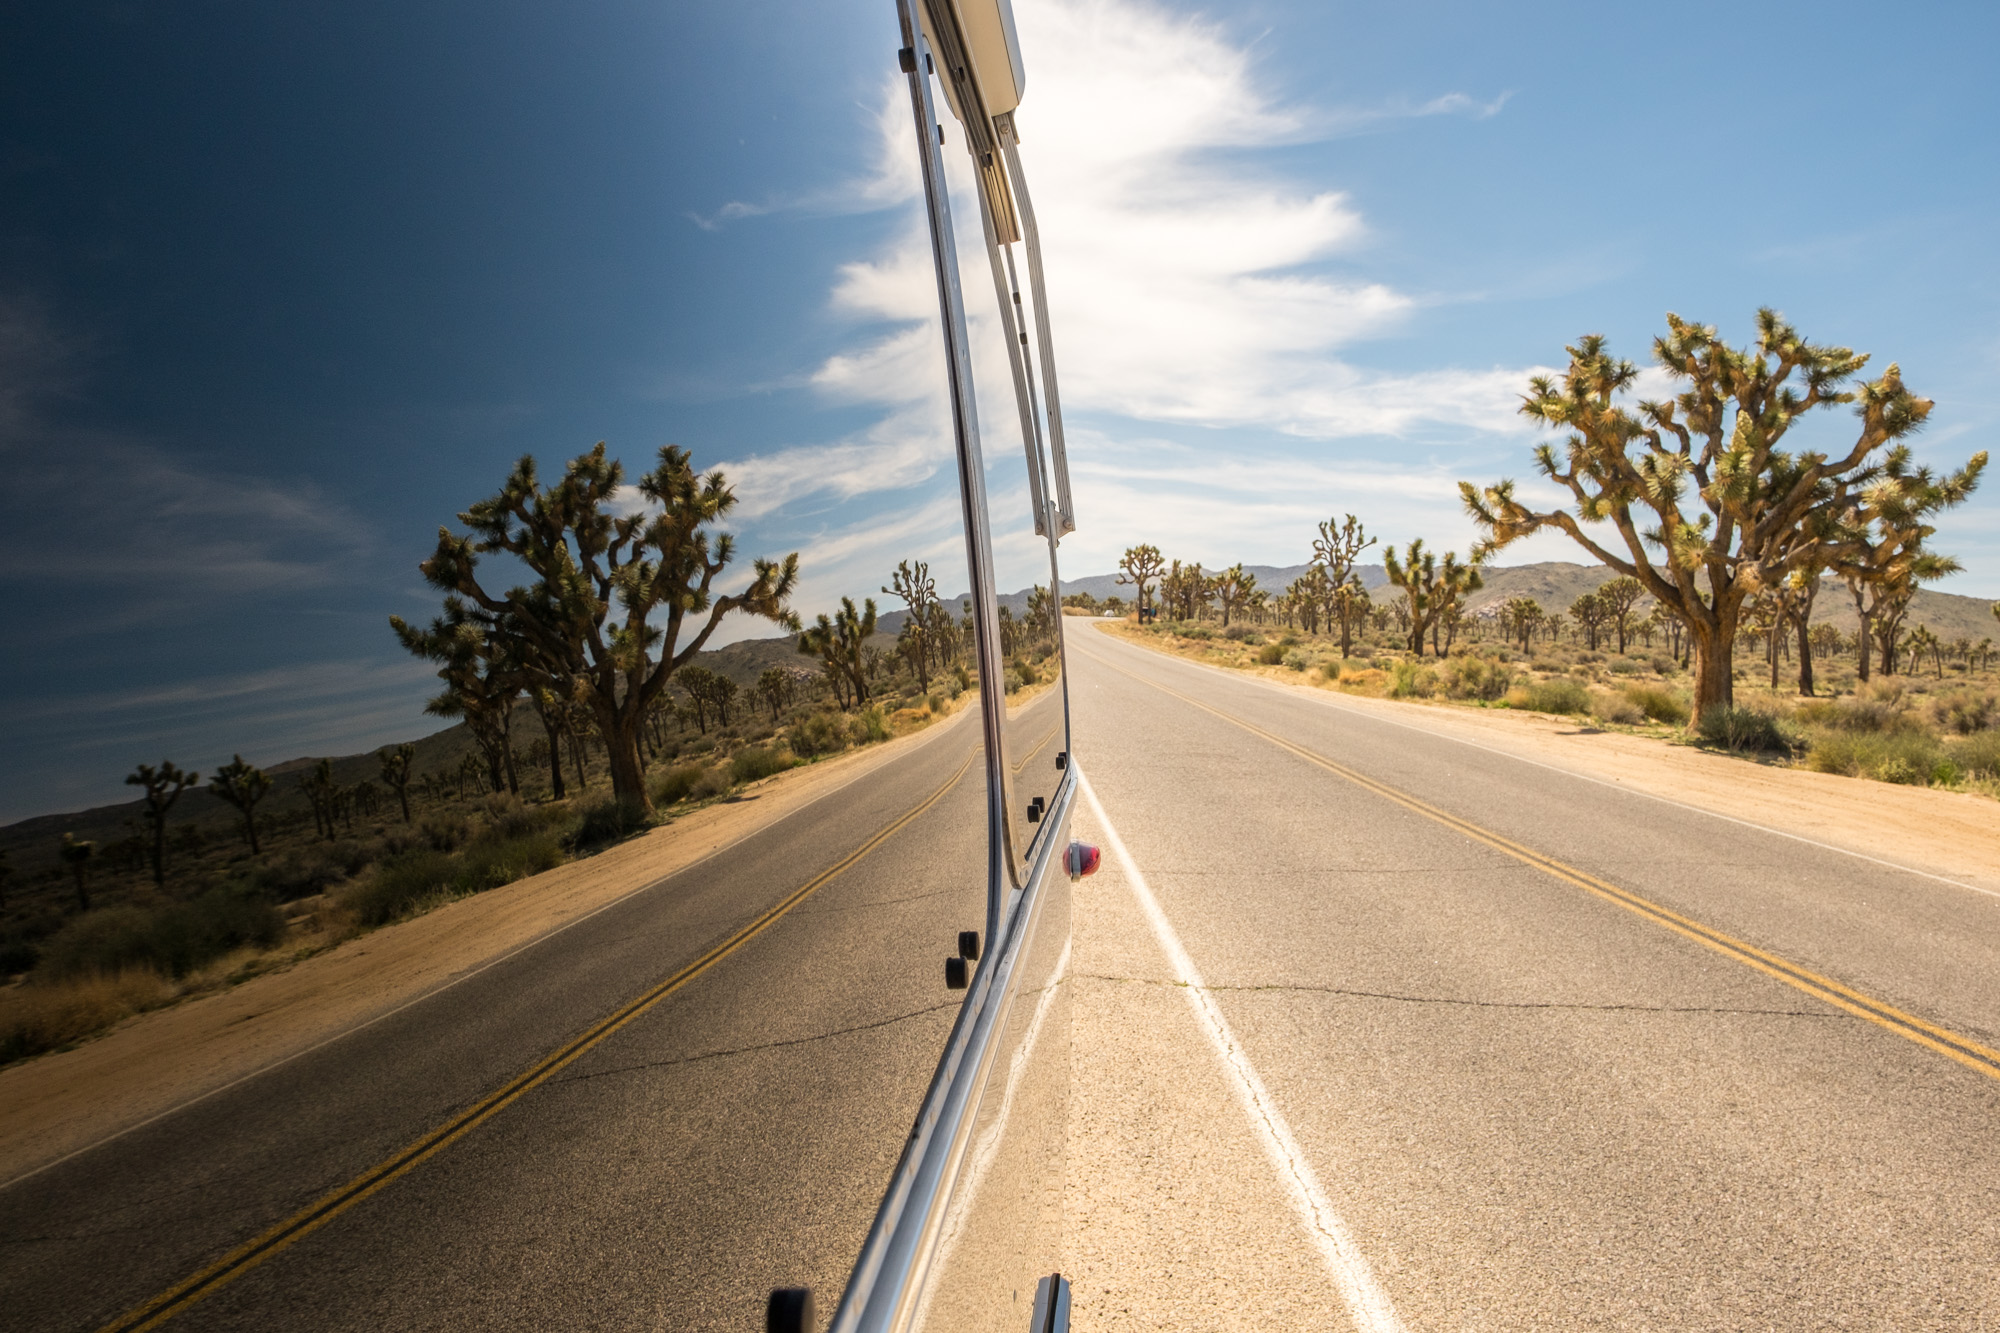 The Joshua Tree as reflected in Wally, our beloved Airstream.